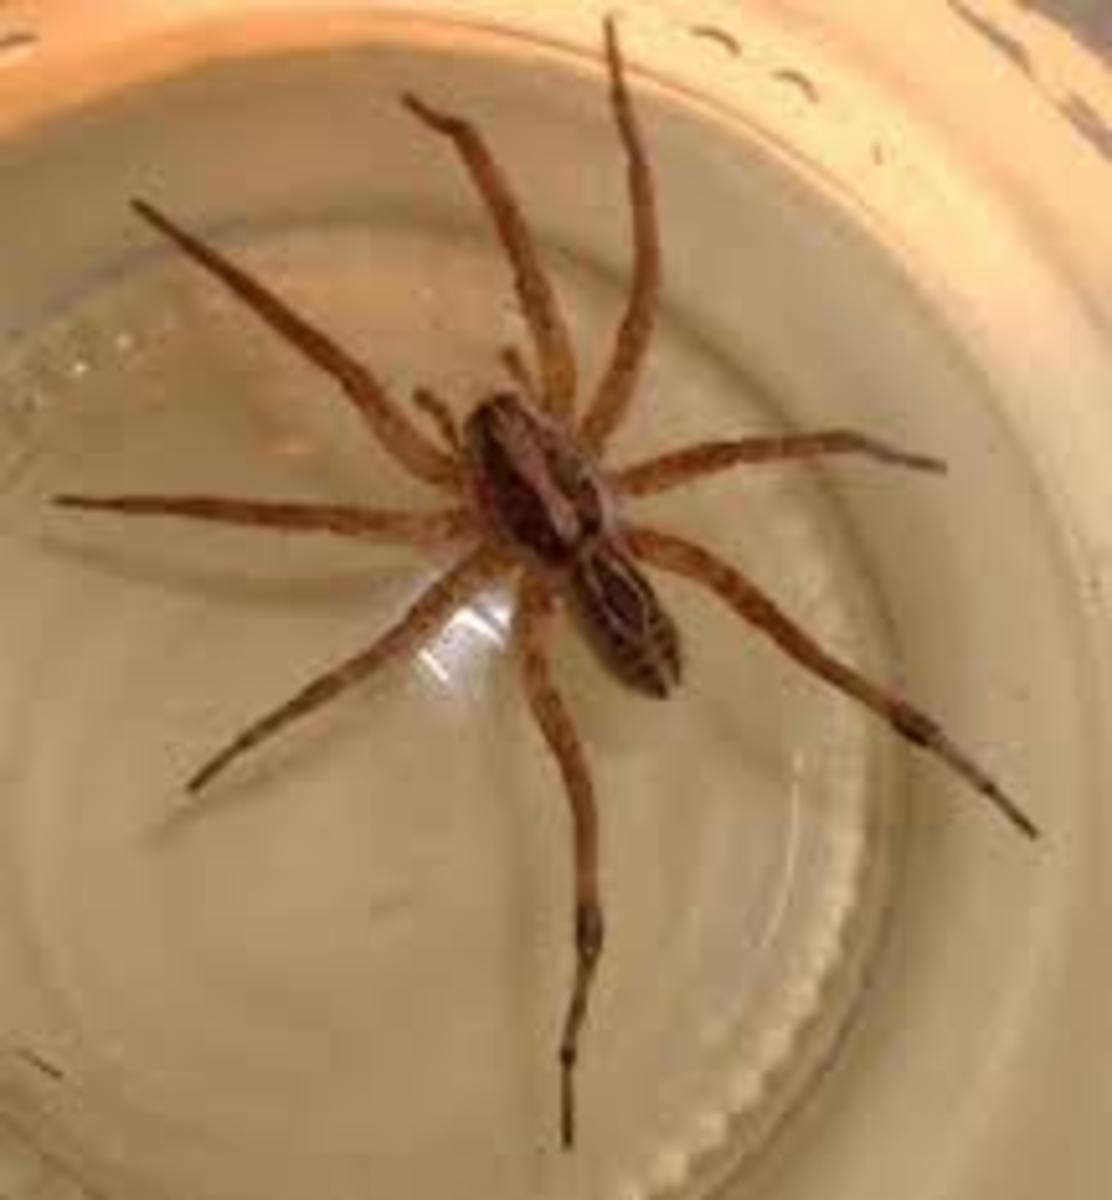 Wolf Spider Bite: What You Need To Do? | HubPages